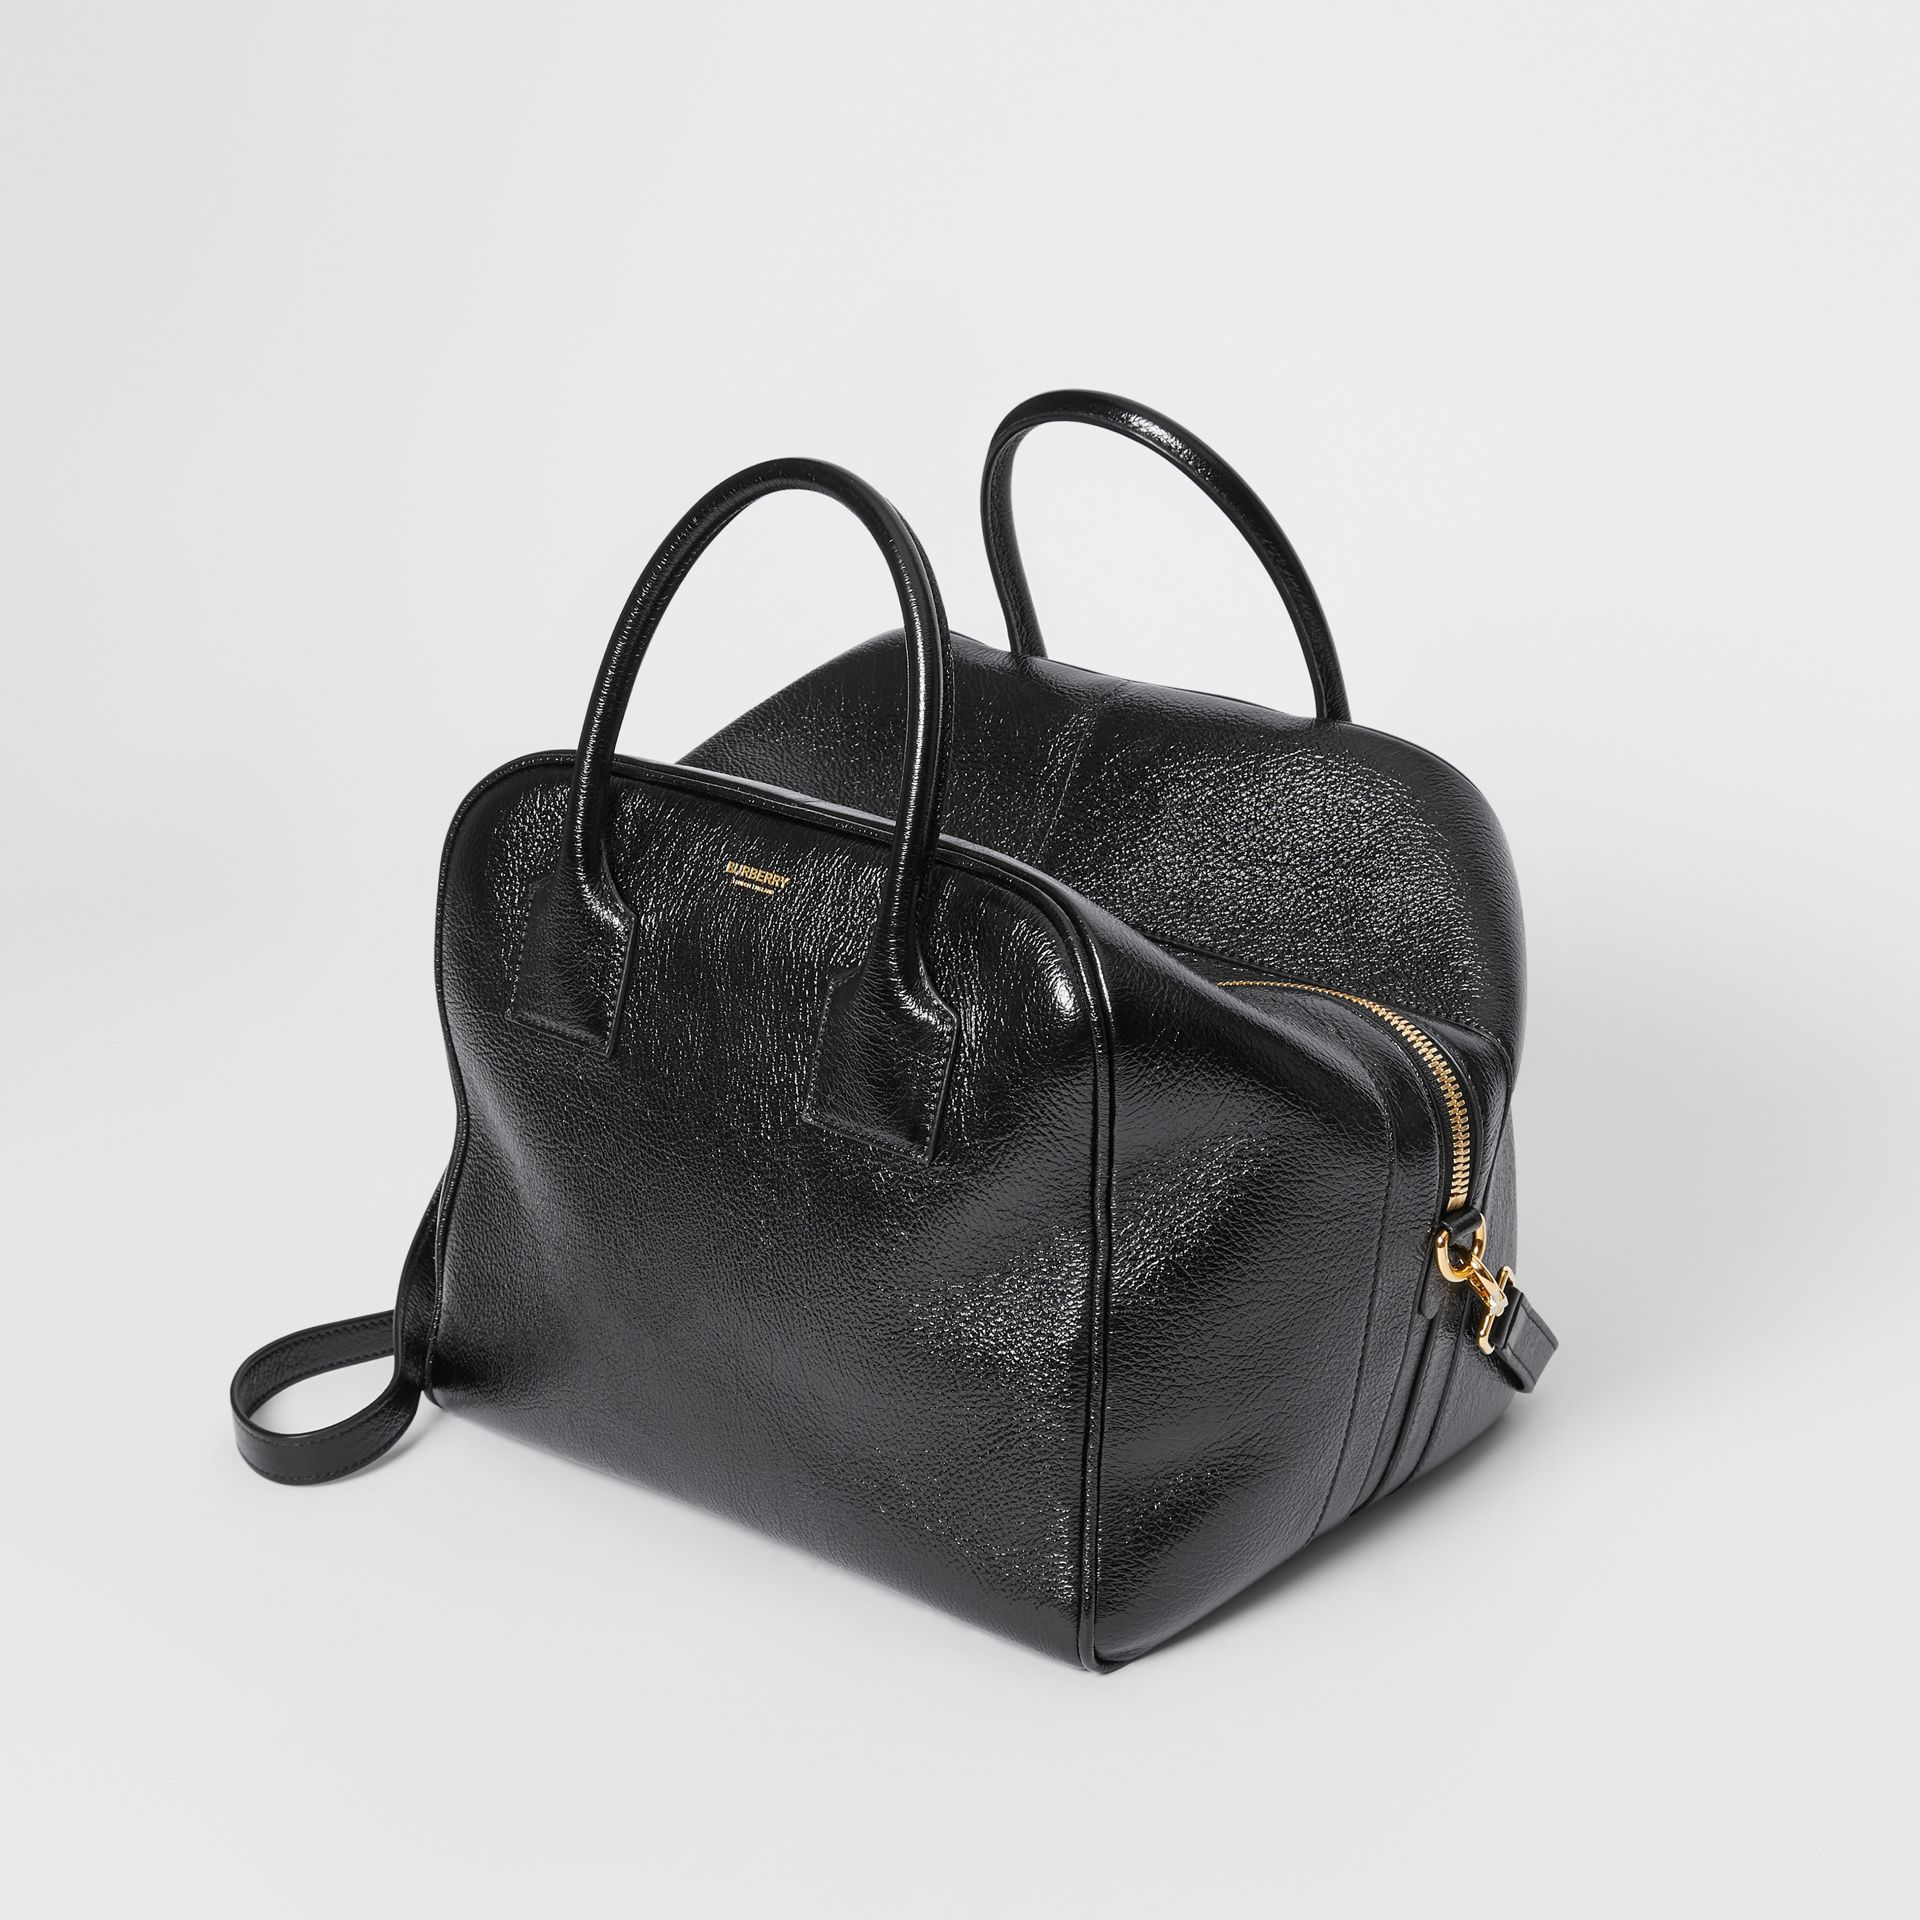 Medium Lambskin Cube Bag in Black - Women | Burberry Singapore - gallery image 3